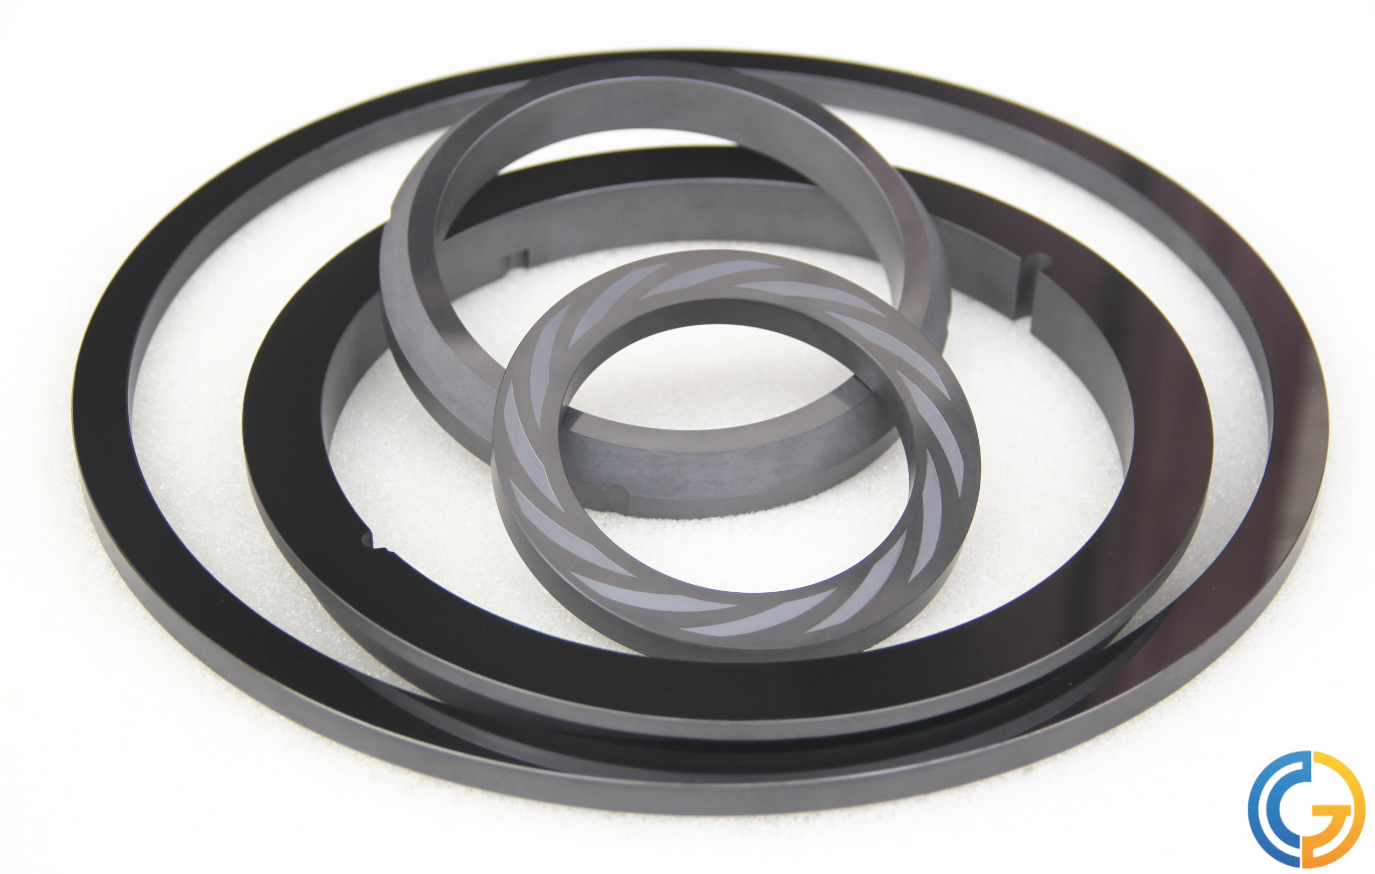 Sintered Silicon Carbide Mechanical Seal Ring